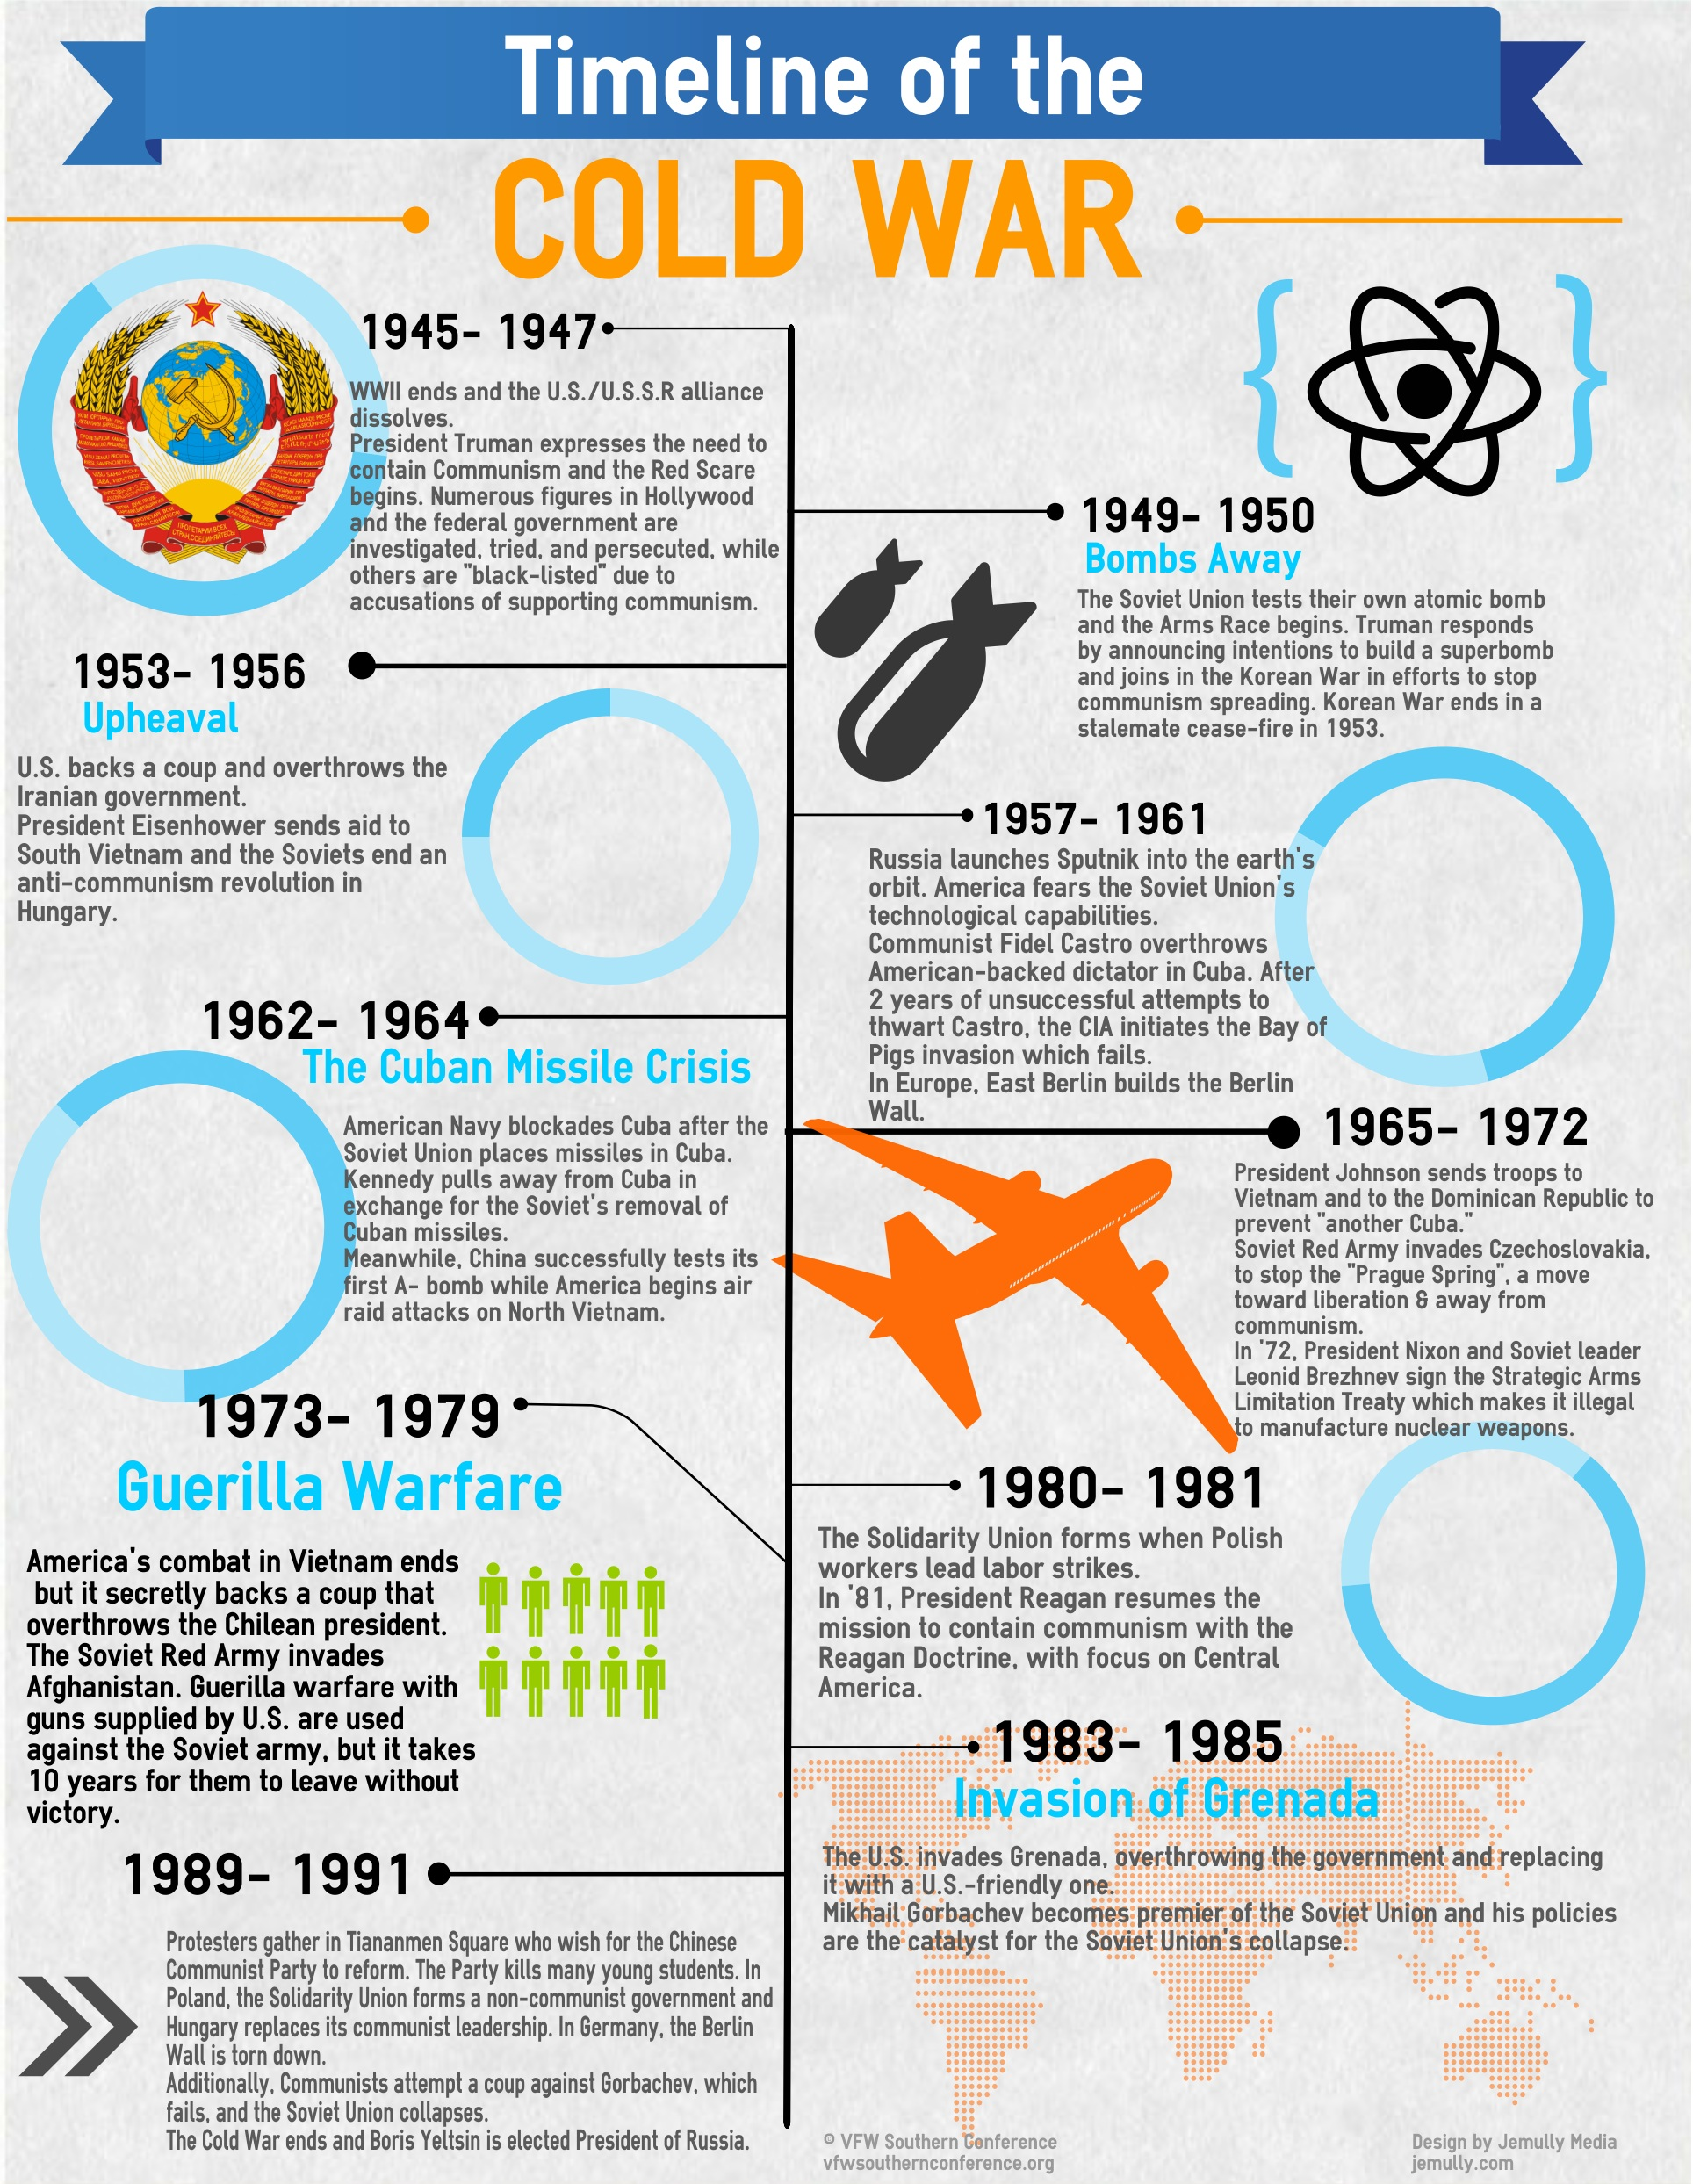 The Cold War Timeline Infographic - VFW Southern Conference